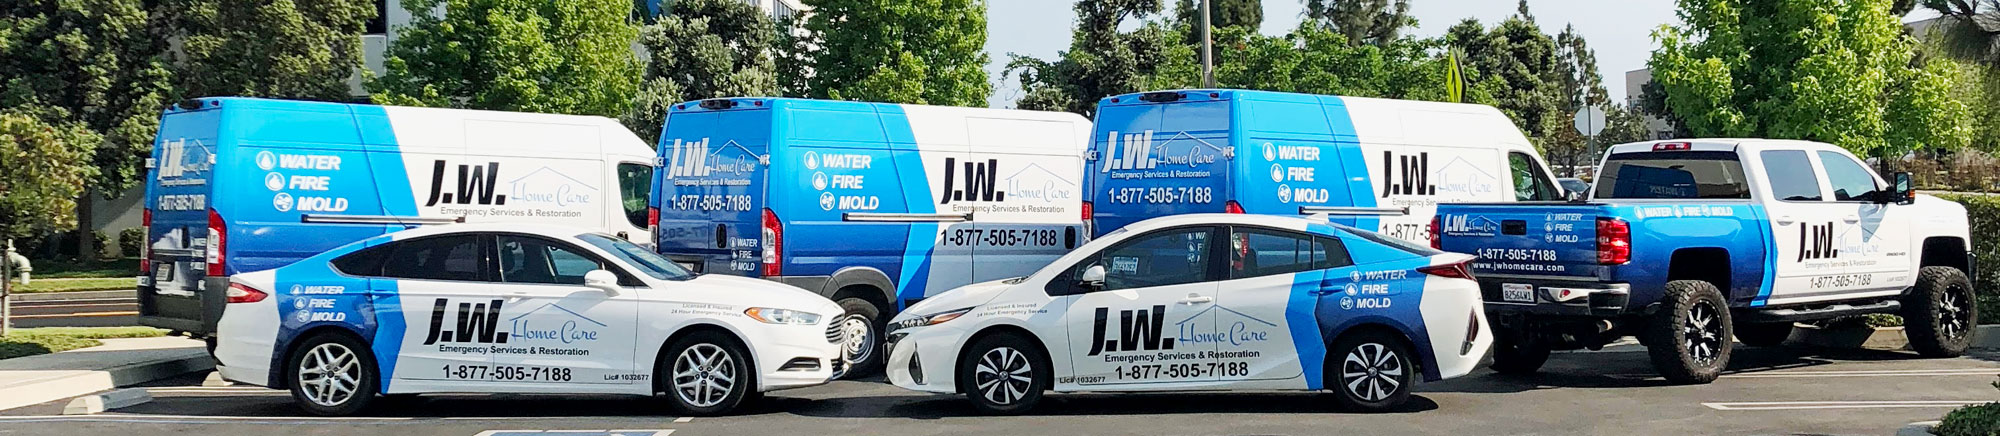 Jw Home Care Restoration Your Local Water Damage Experts